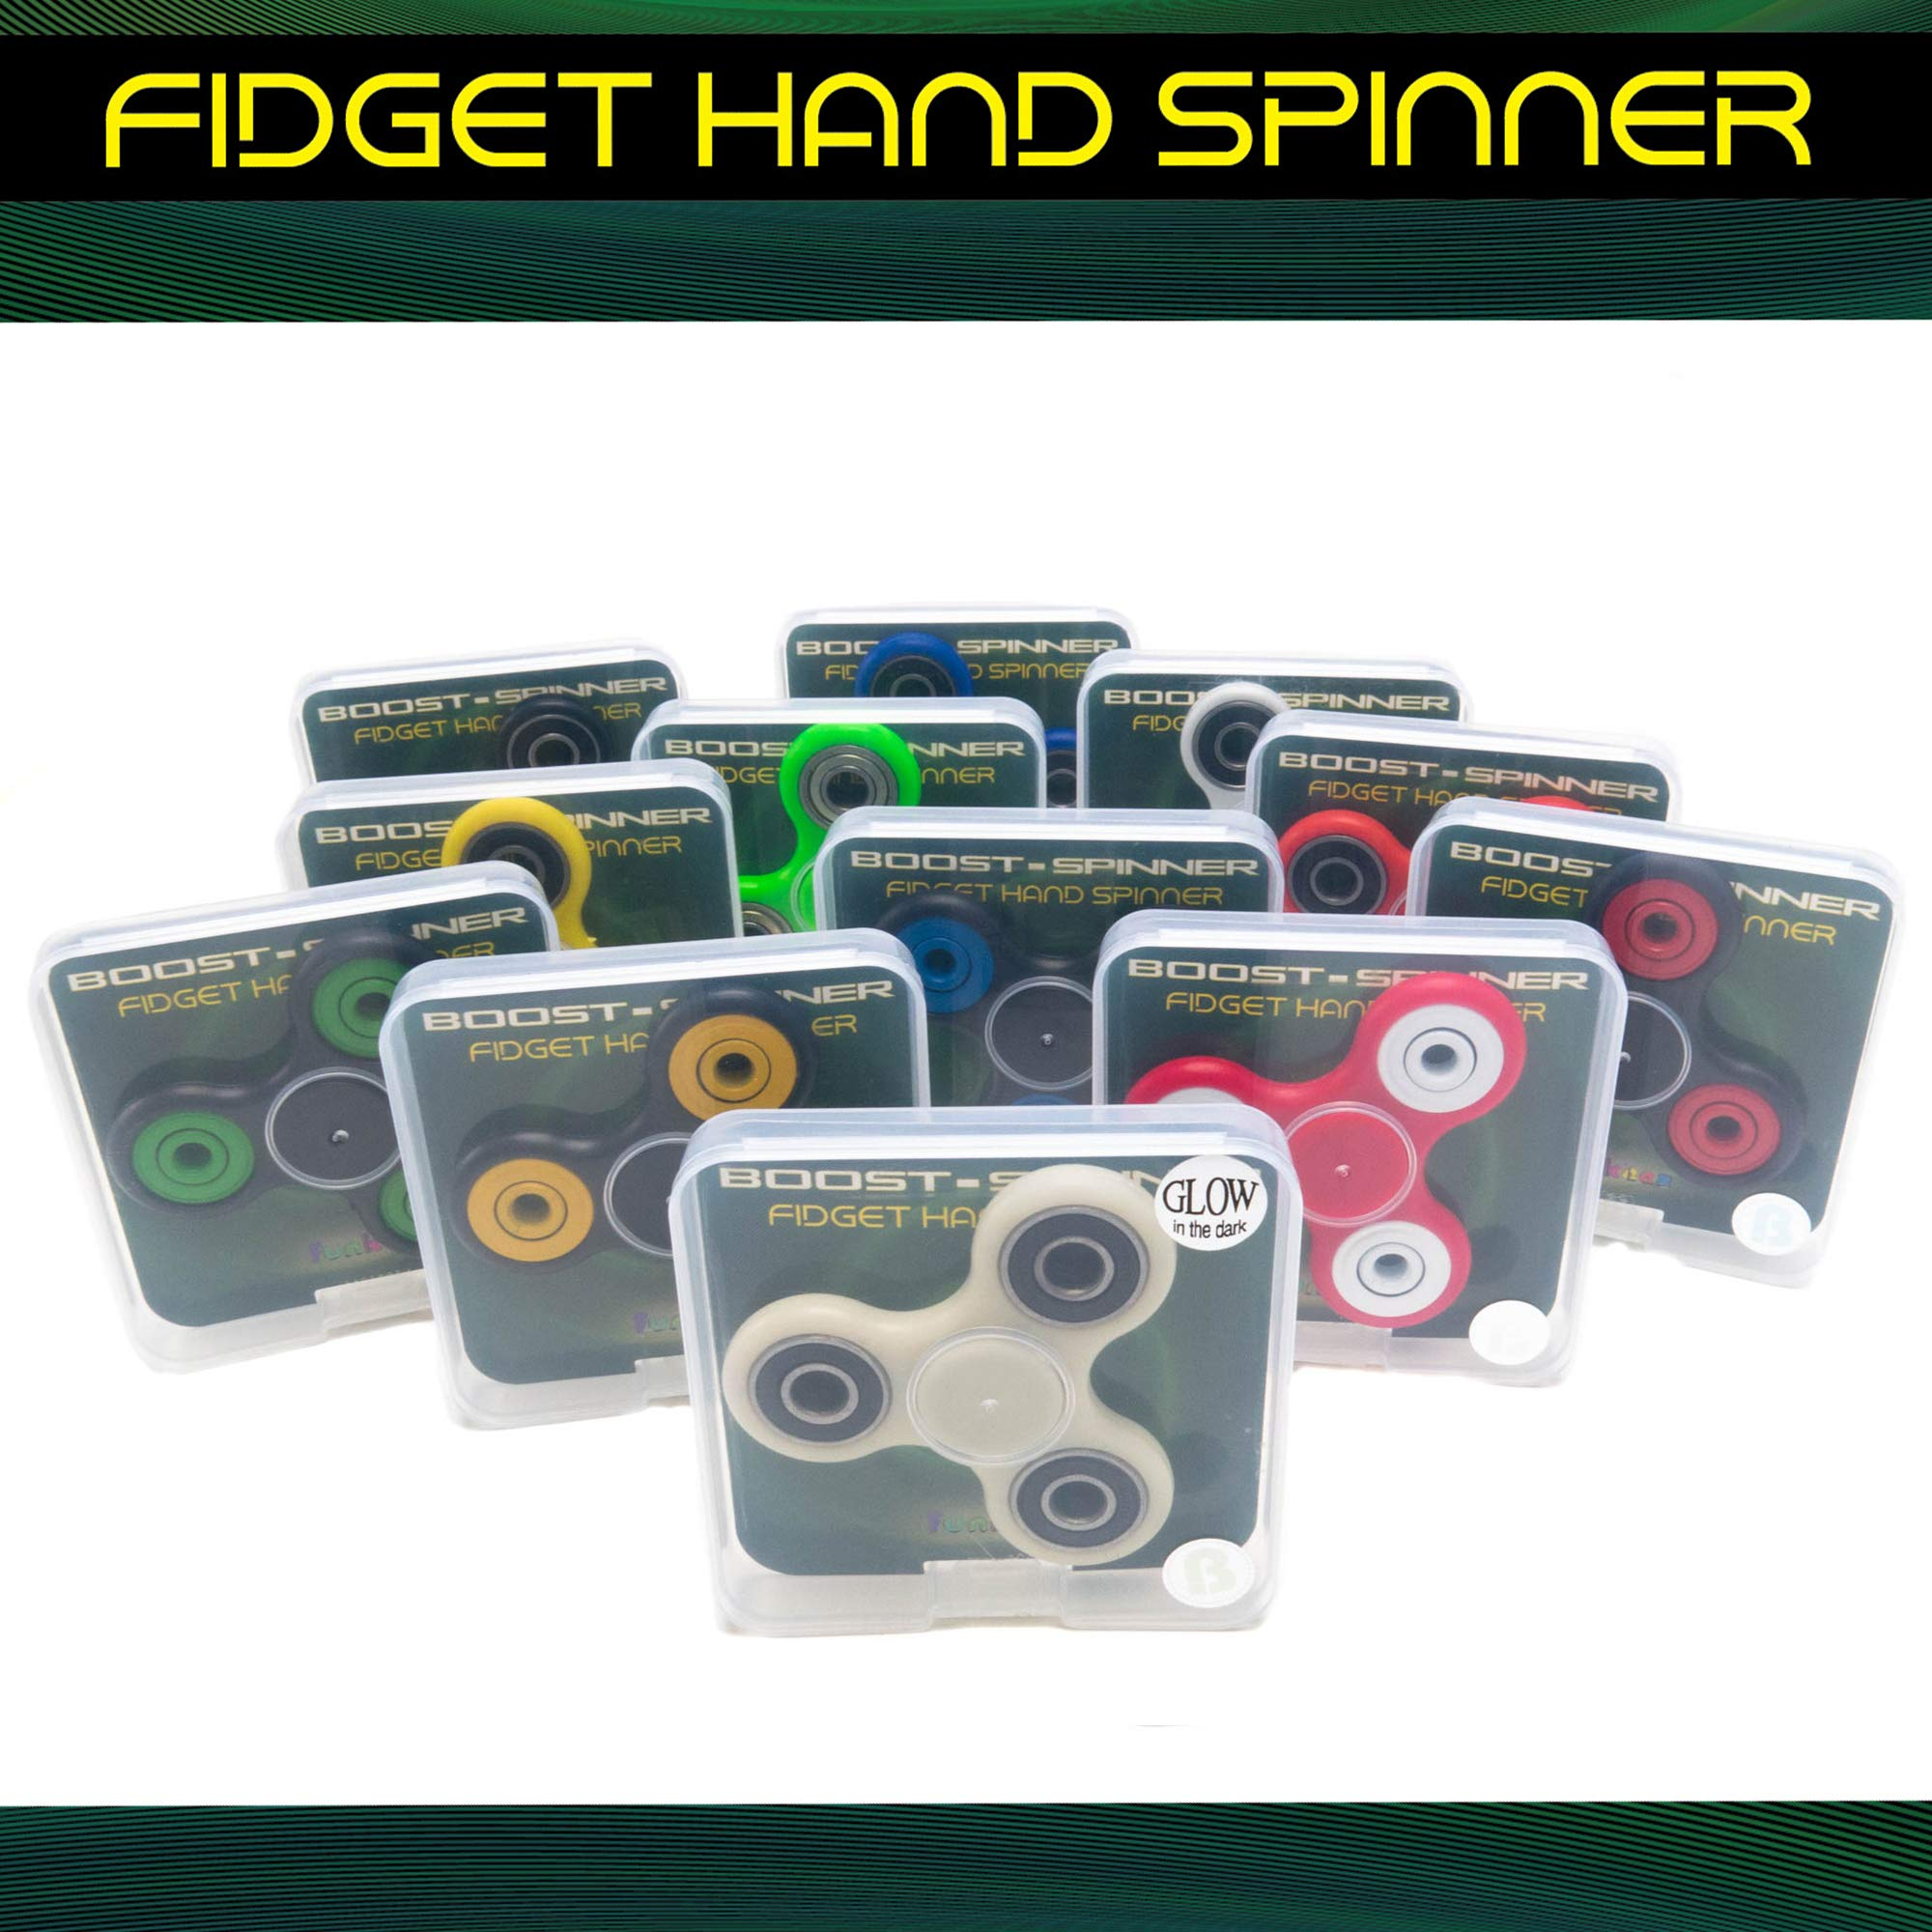 12 PCs Fidget Spinner Pack for Kids - Metallic Toy Spinners - Great Party Favors for Boys Girls - Stress Relief Toys for Adults and Children, 2-3 Min Spin, Relieves Your ADD ADHD Autism (Solid) by FROG SAC (Image #4)